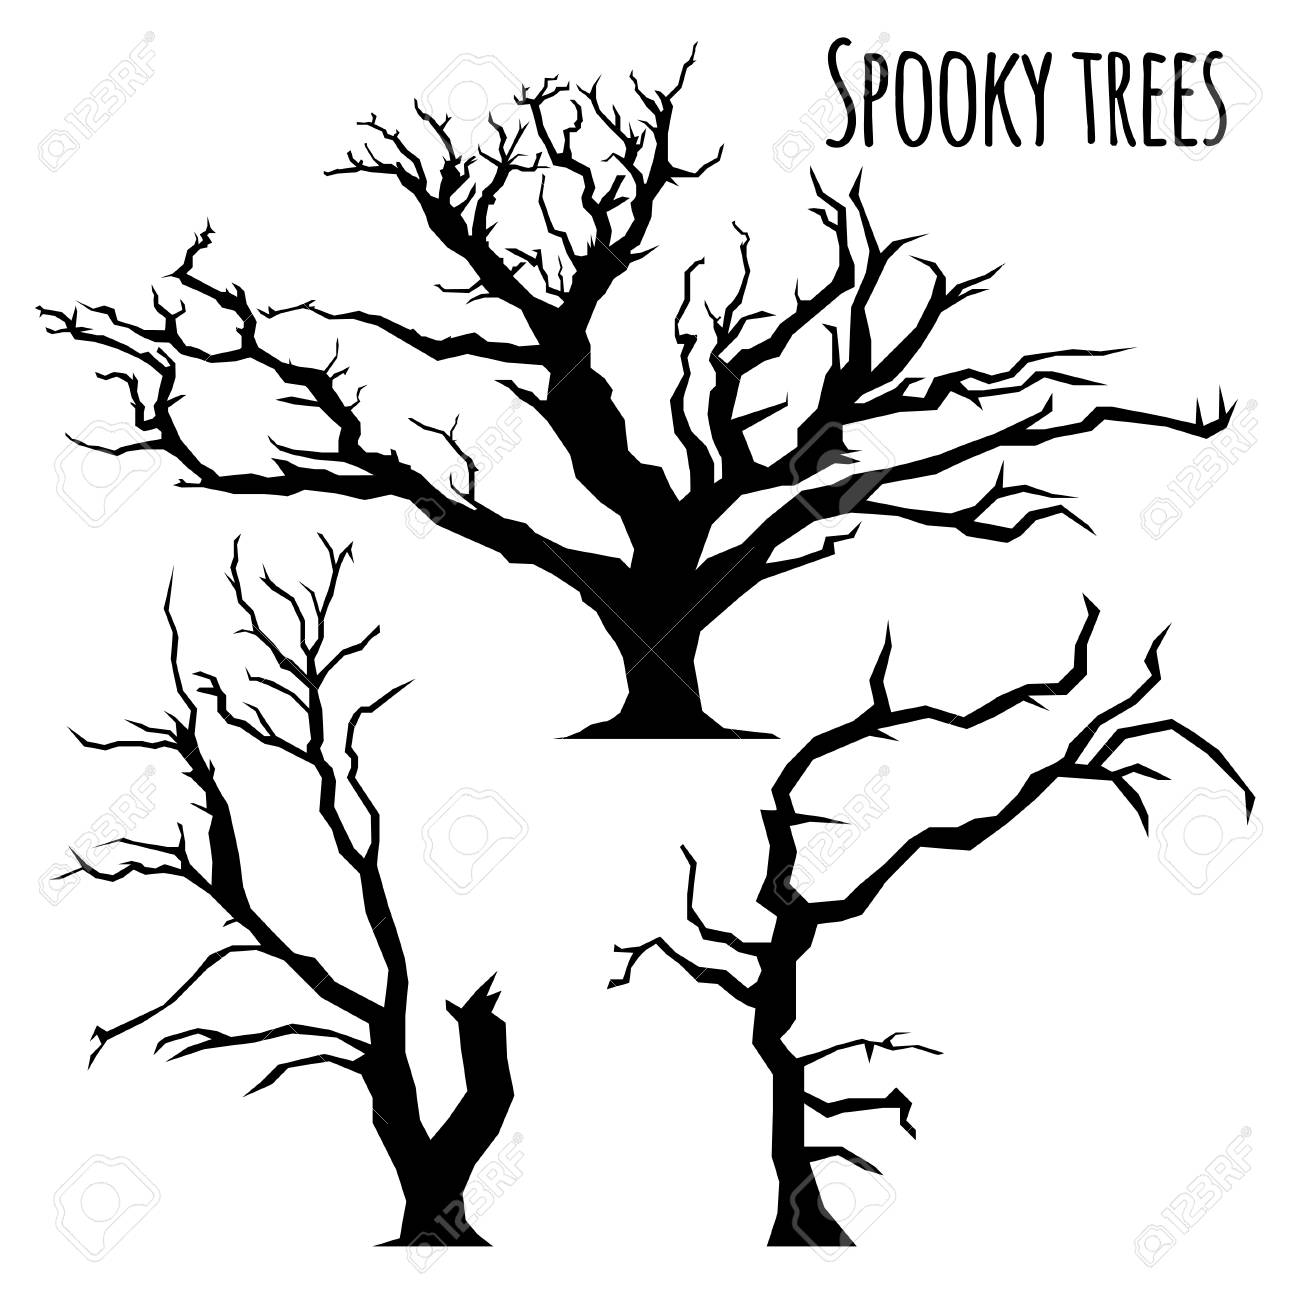 hight resolution of collection of spooky trees silhouettes on the white background stock vector 86963745